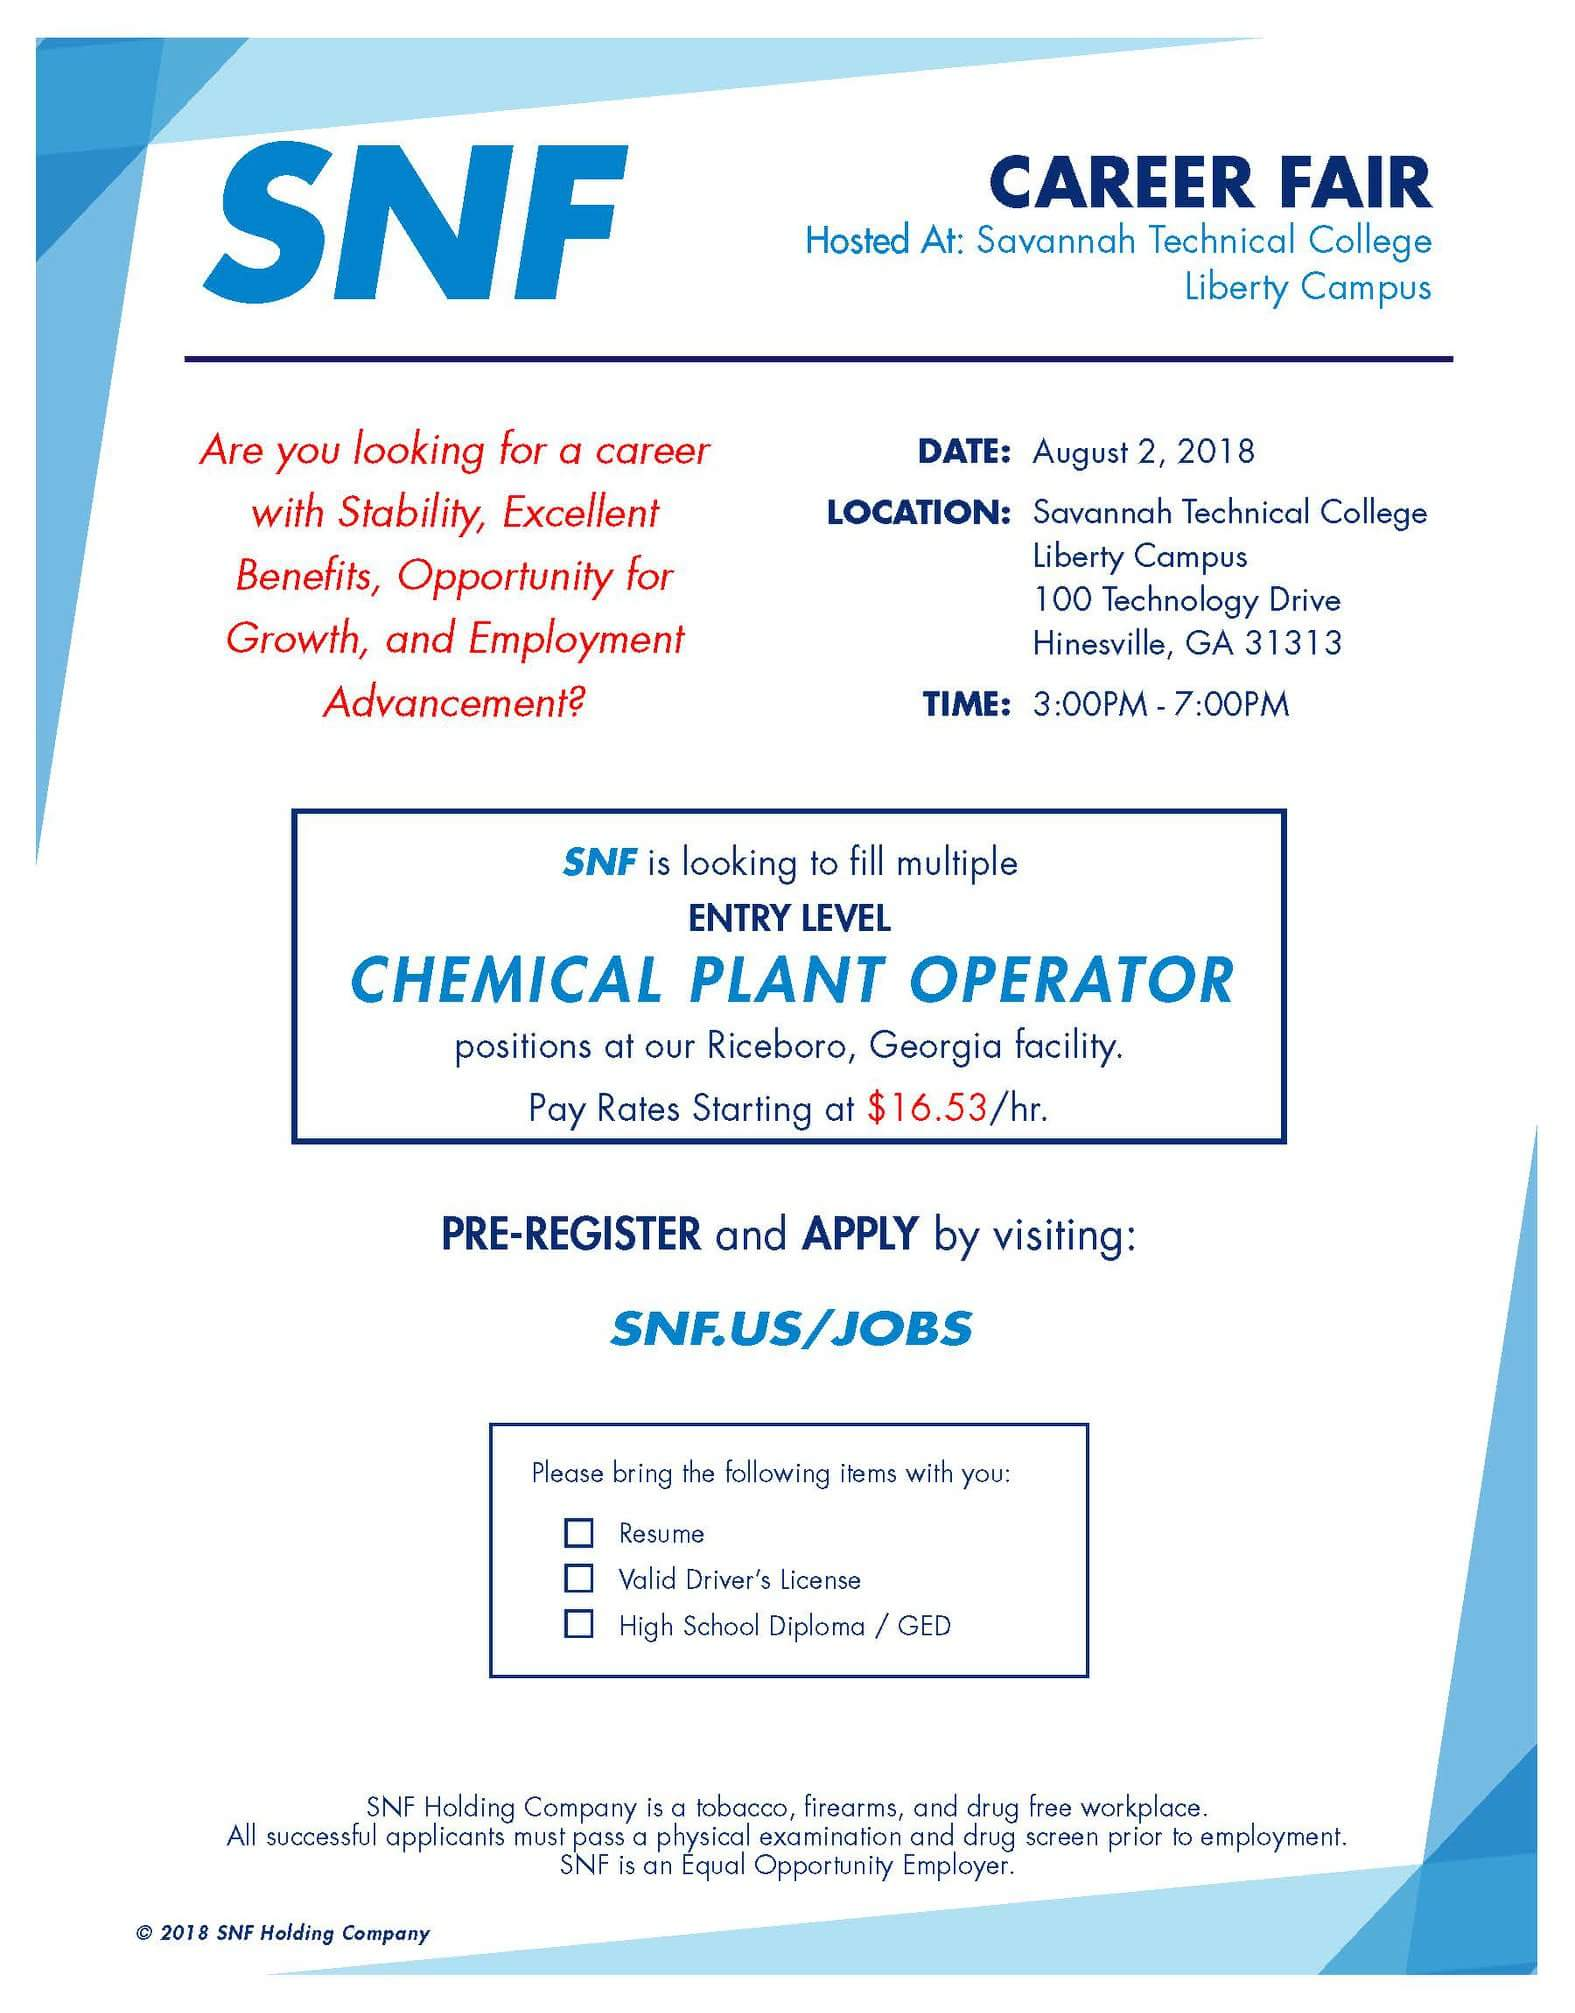 SNF Career FairLiberty County, Georgia | Hospitality, Commerce